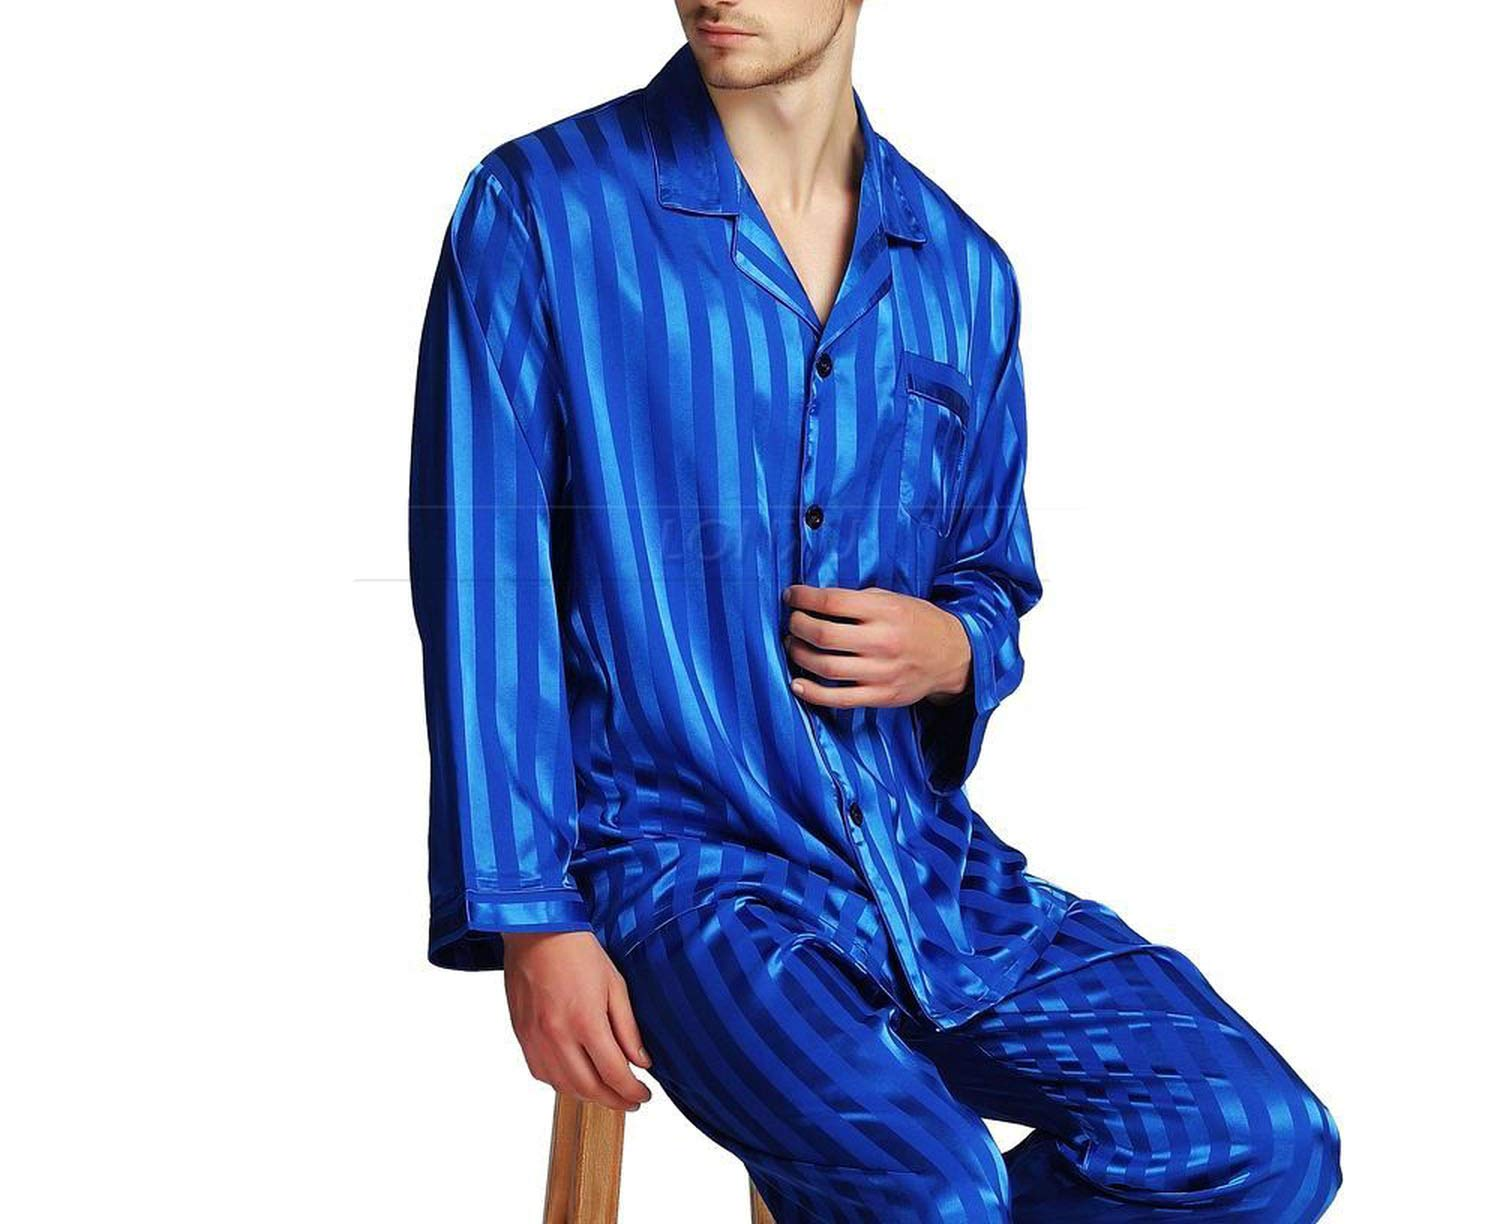 Mens Silk Satin Pajamas Set Pajama Pyjamas Sleepwear Set Loungewear,Invie,XXXL